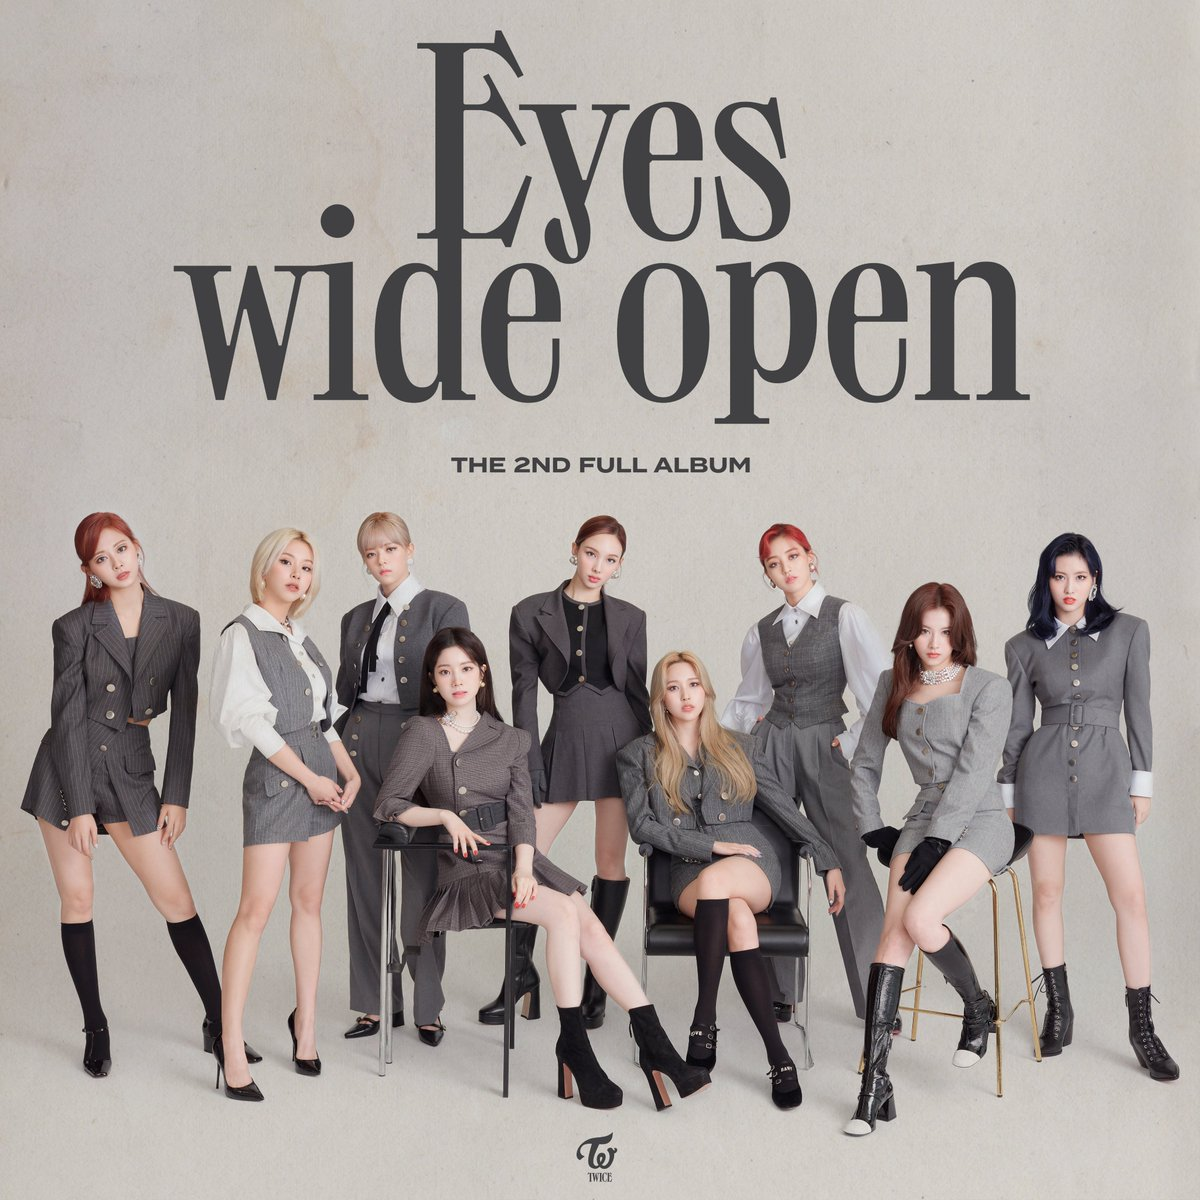 "TWICE on Twitter: ""TWICE THE 2ND FULL ALBUM Eyes wide open - I CAN'T STOP ME <ONLINE Cover> 2020.10.26 6pm in KST 2020.10.26 5am in EST #TWICE #트와이스 #Eyeswideopen #ICANTSTOPME… https://t.co/gdsBRTSadL"""